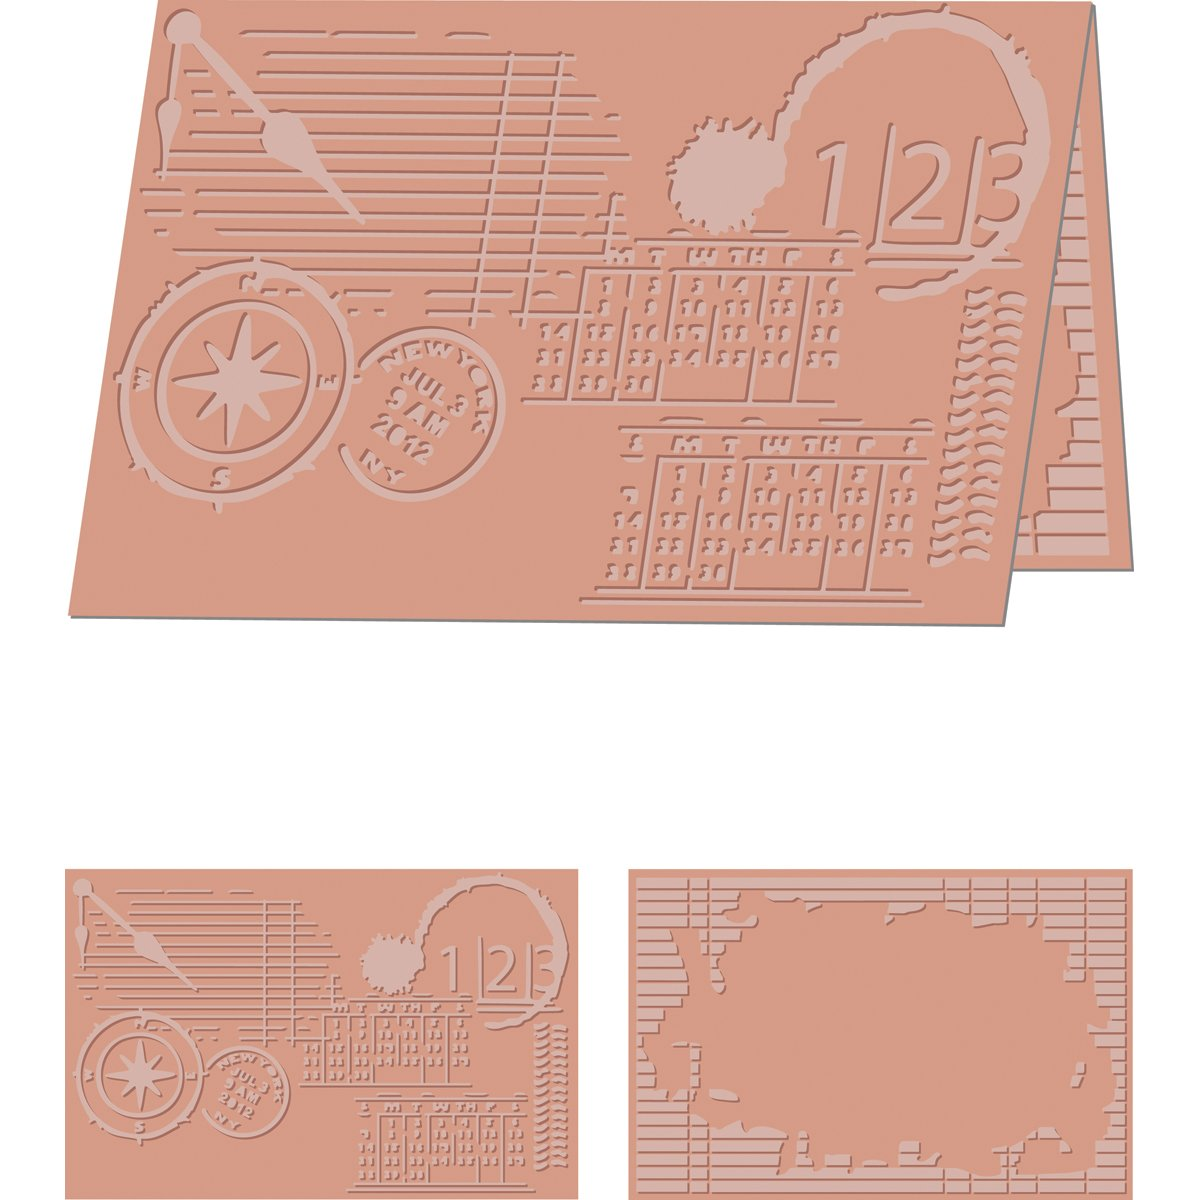 Craftwell USA EF-PER-LTR Perseverance Embossing Folder, 8.5 by 11-Inch